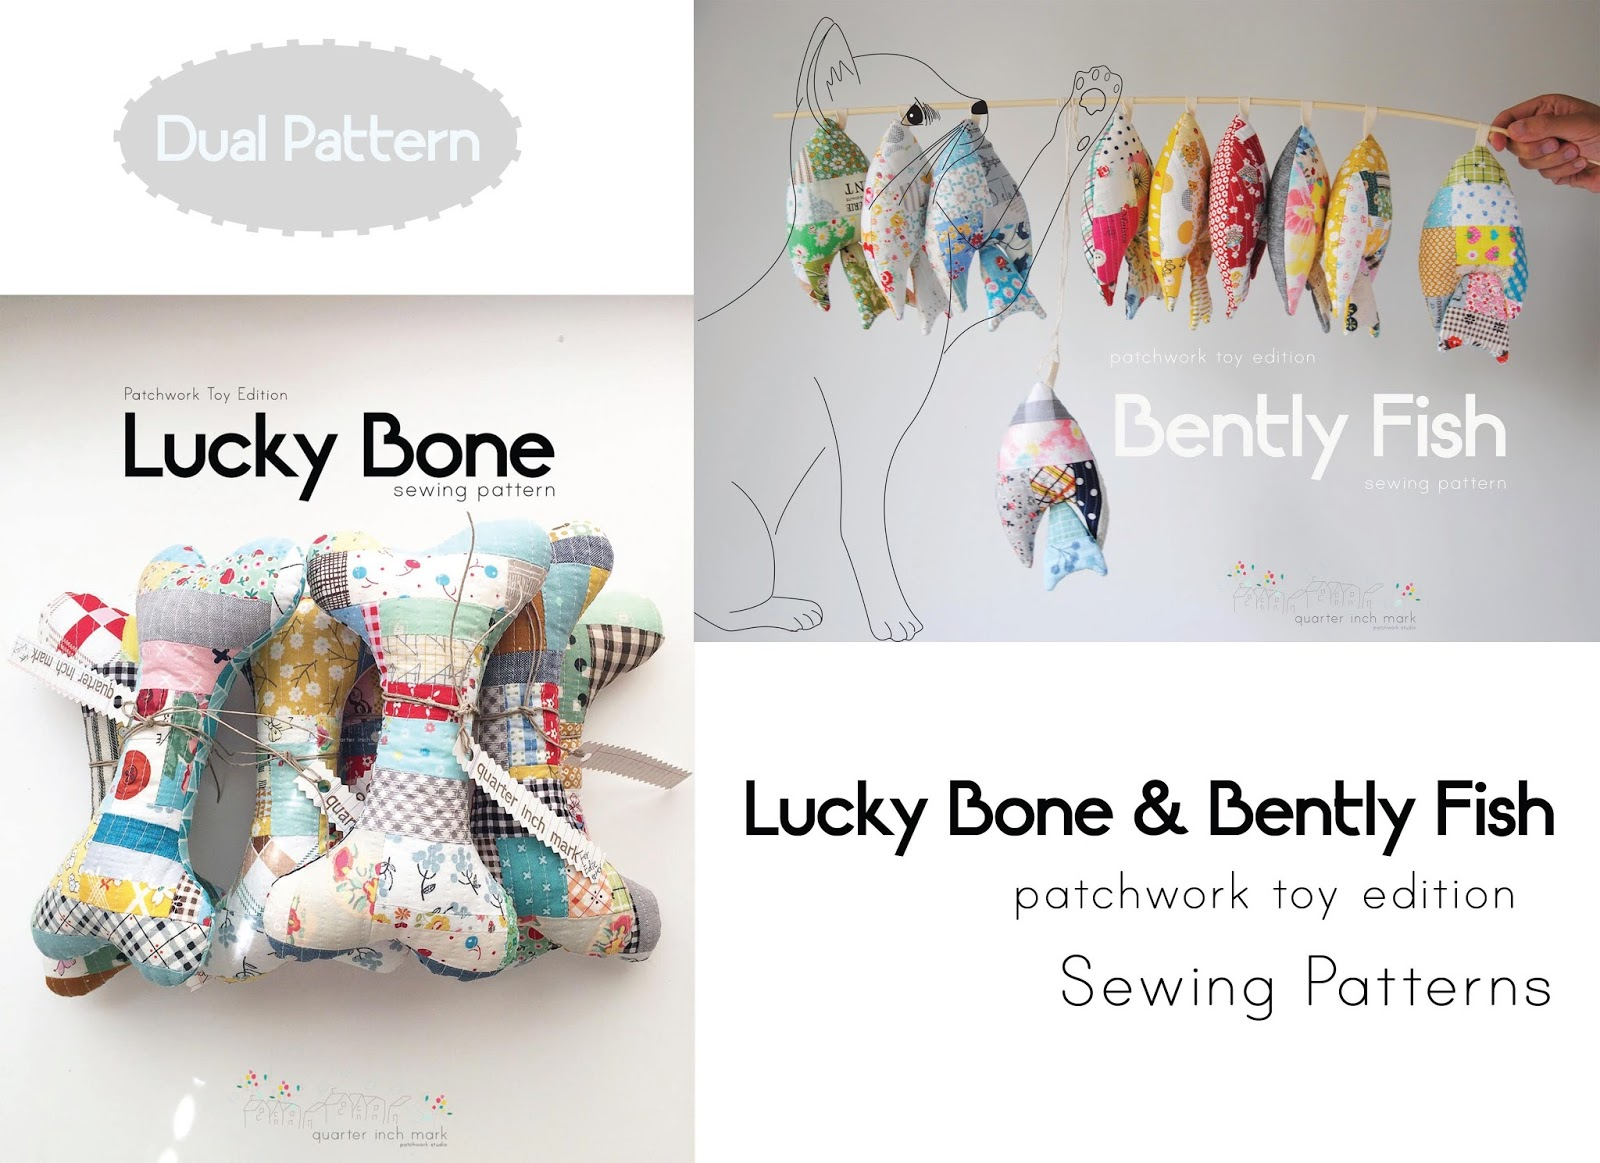 14 mark bently fish patchwork sewing pattern bently fish patchwork toy sewing pattern comes with 7 pages of step by step instructions and included one template page jeuxipadfo Image collections